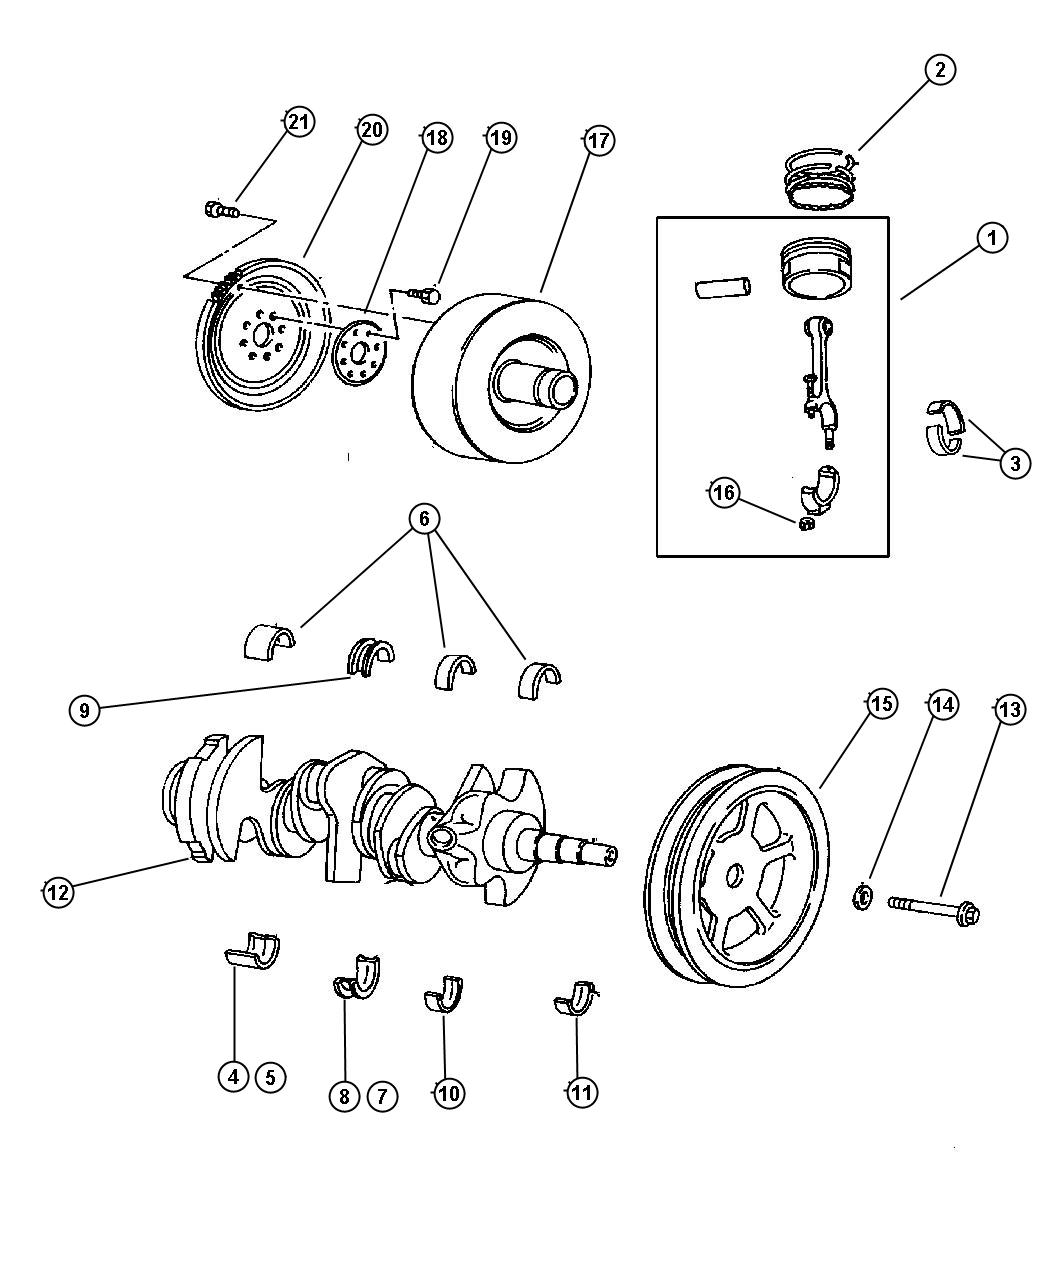 Dodge Grand Caravan Used For  Piston Pin And Rod  Engine